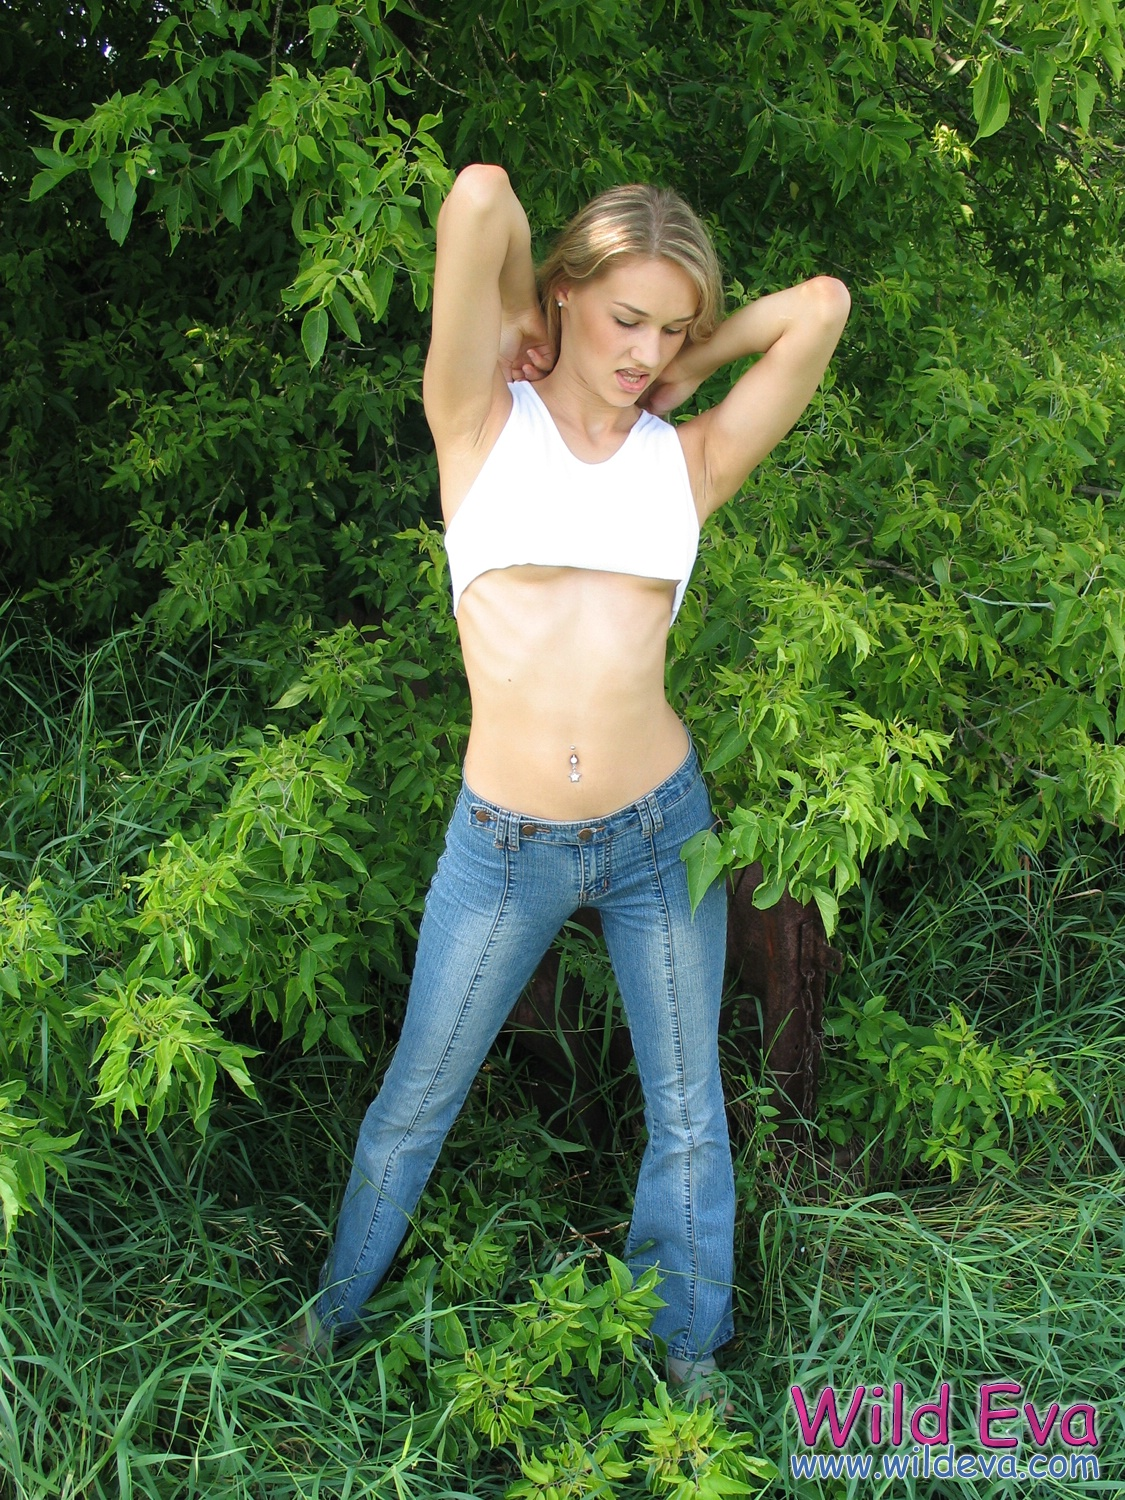 wild-eva-meadow-naked-jeans-pussy-03